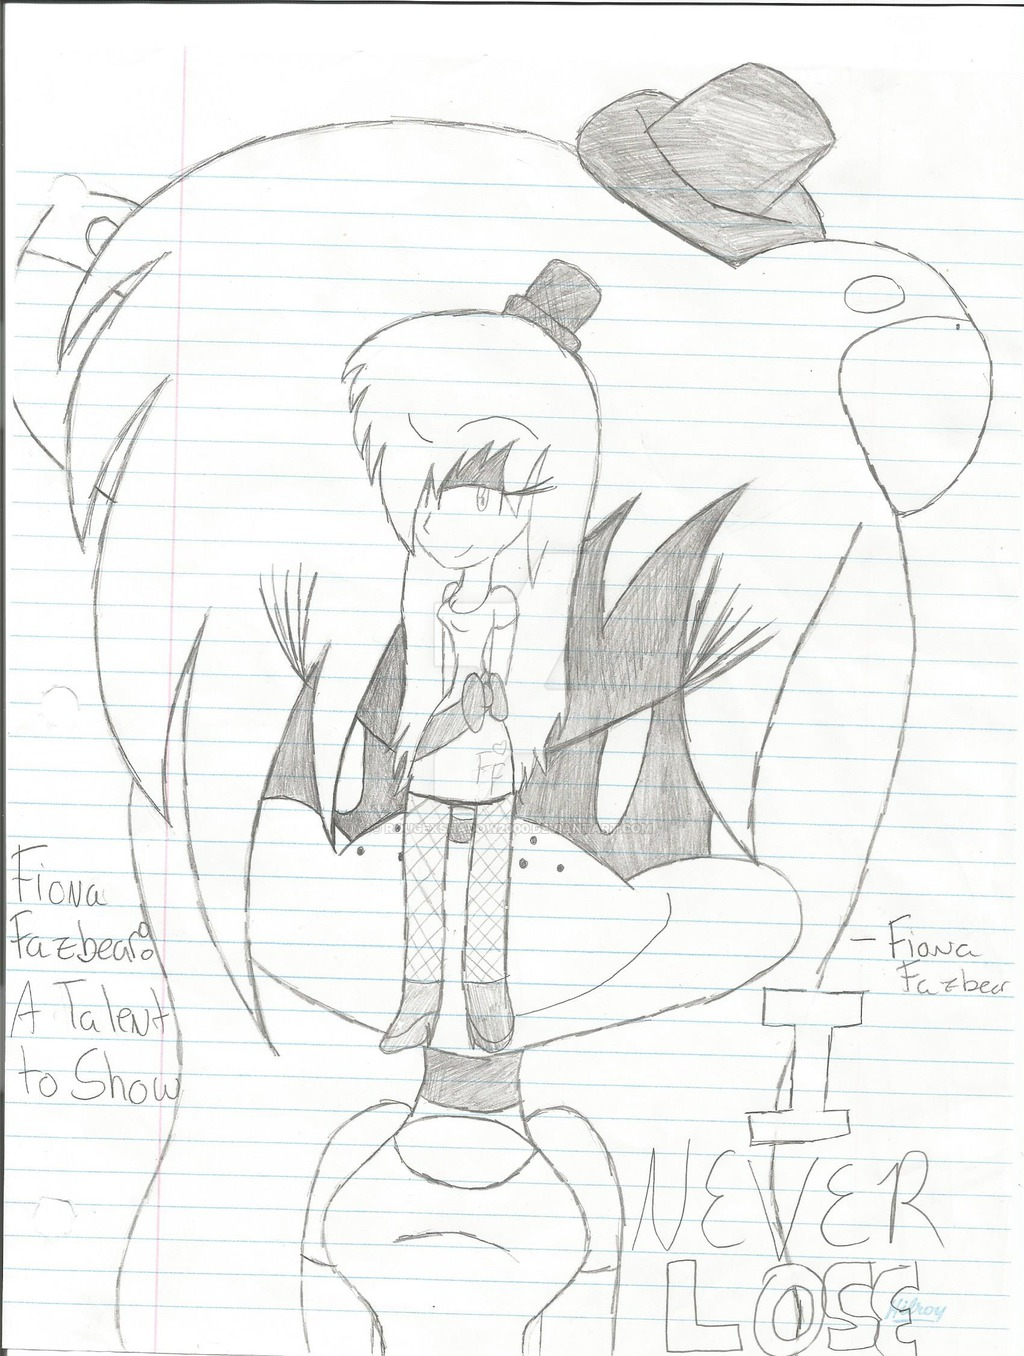 1024x1356 Fiona Fazbear A Talent To Show Cover By Rougexshadow2000